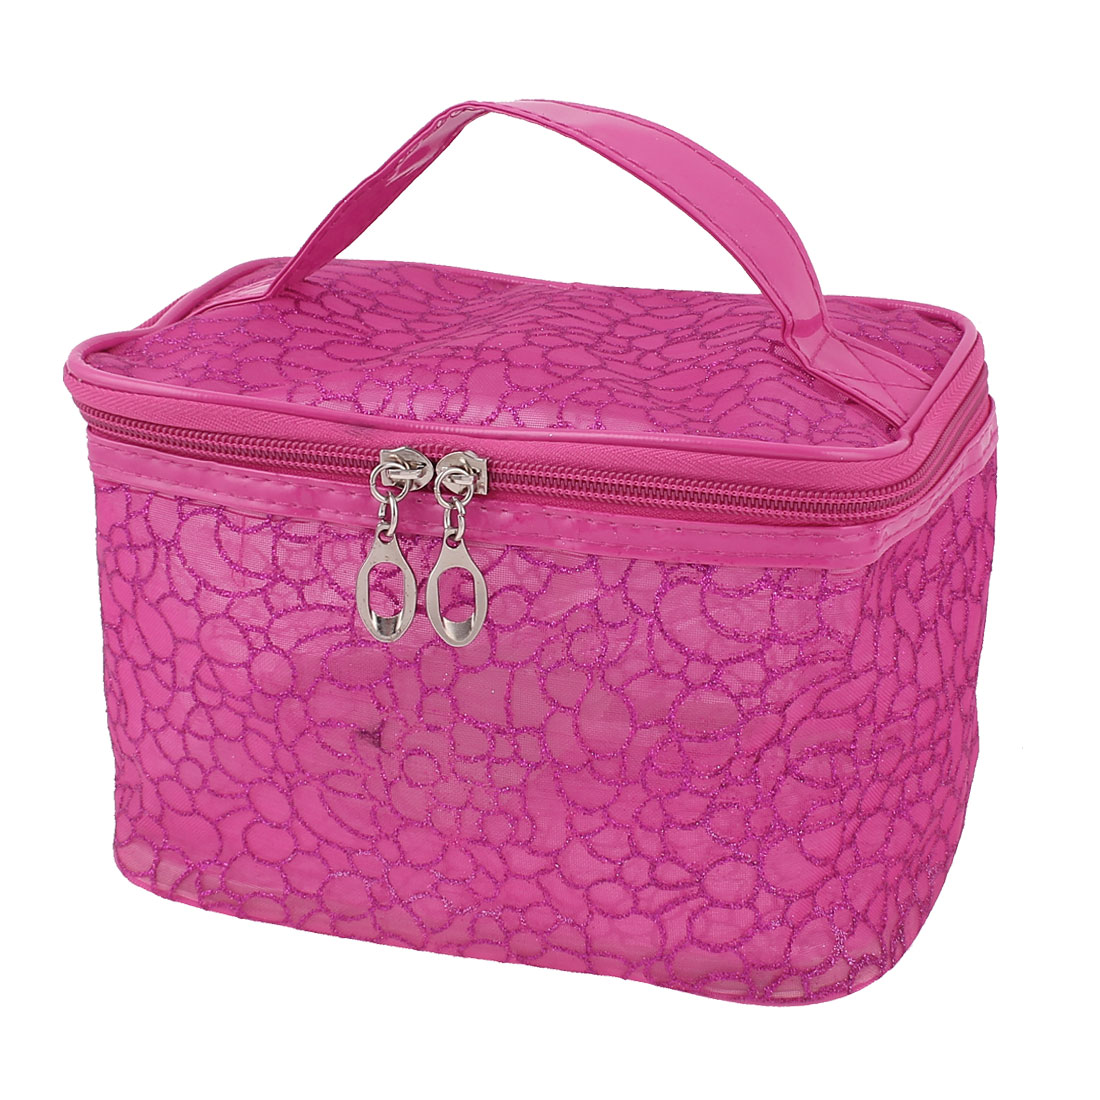 Lady Water Resistant Zipper Closure Makeup Cosmetic Bag Handbag Organizer Fuchsia